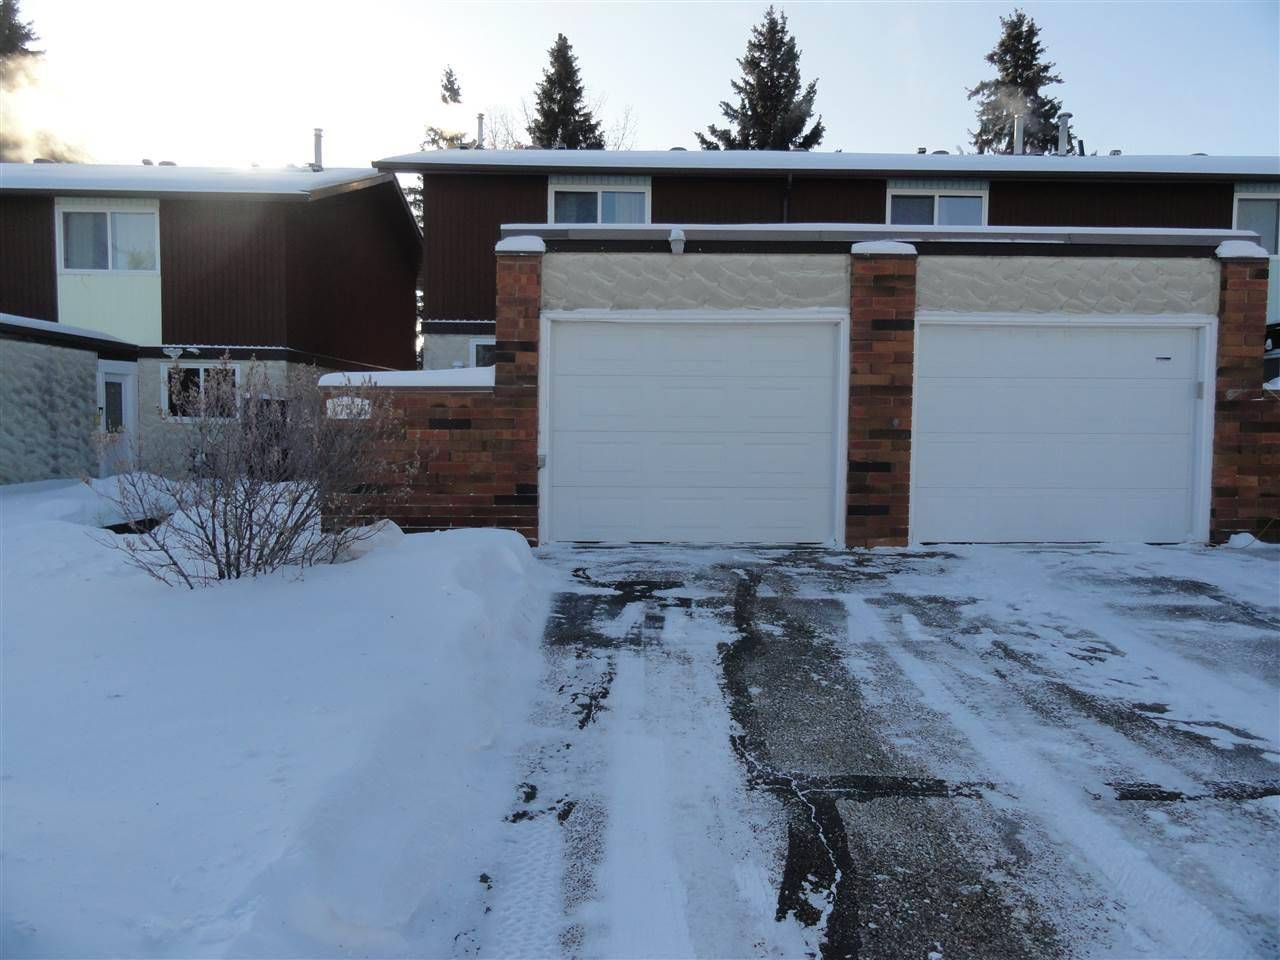 Townhouse for sale at 17515 77 Ave Nw Edmonton Alberta - MLS: E4184144